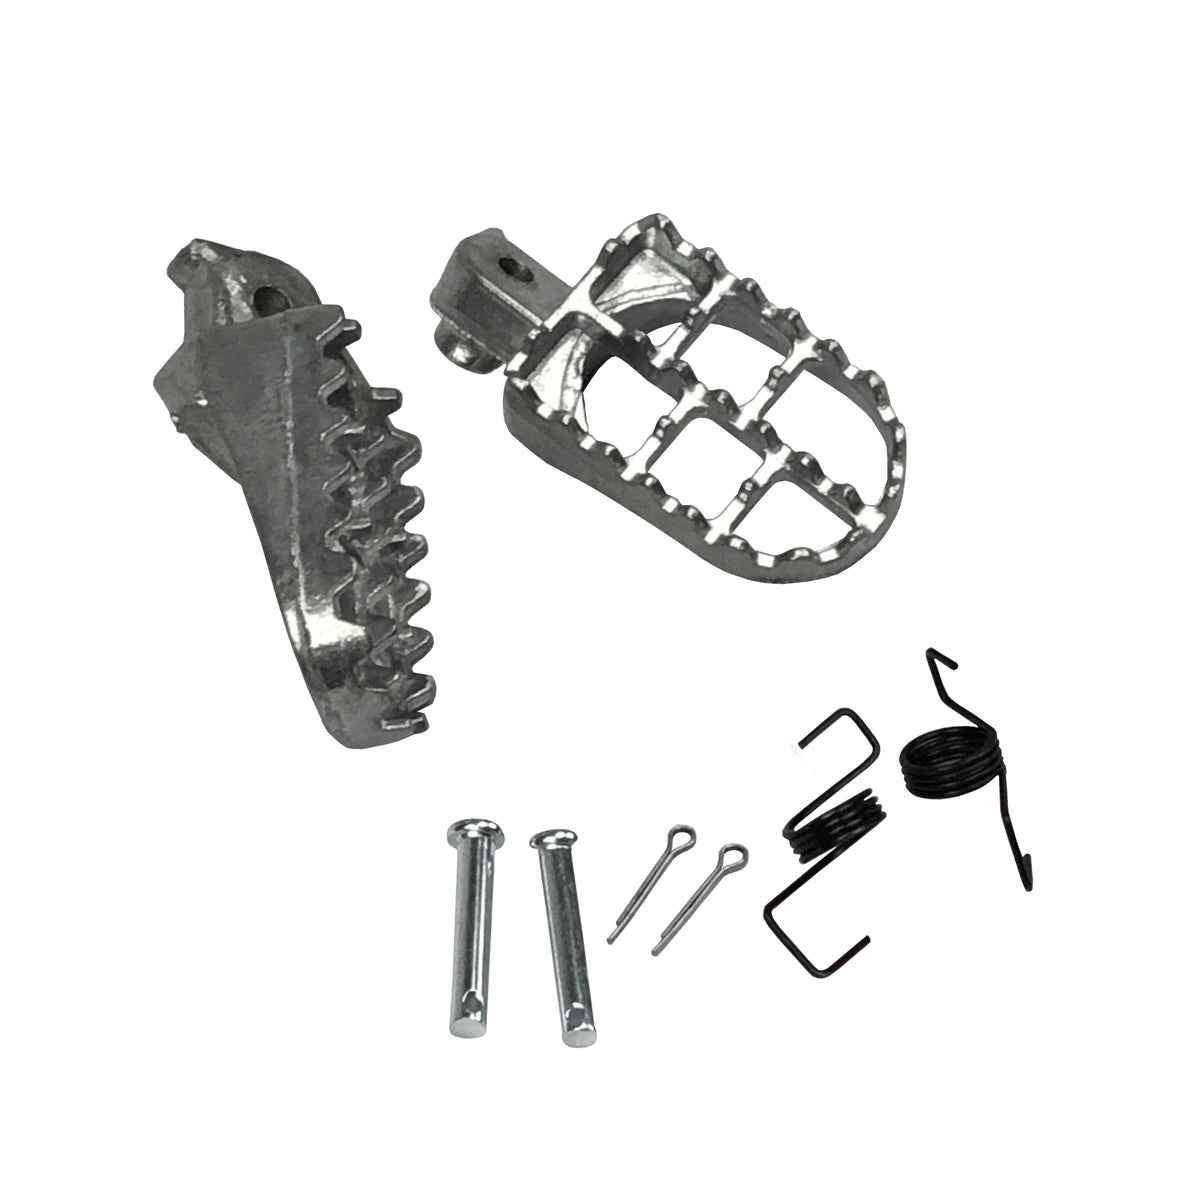 Surron/Segway Wide aluminium footpegs - Electric Dirt Bikes